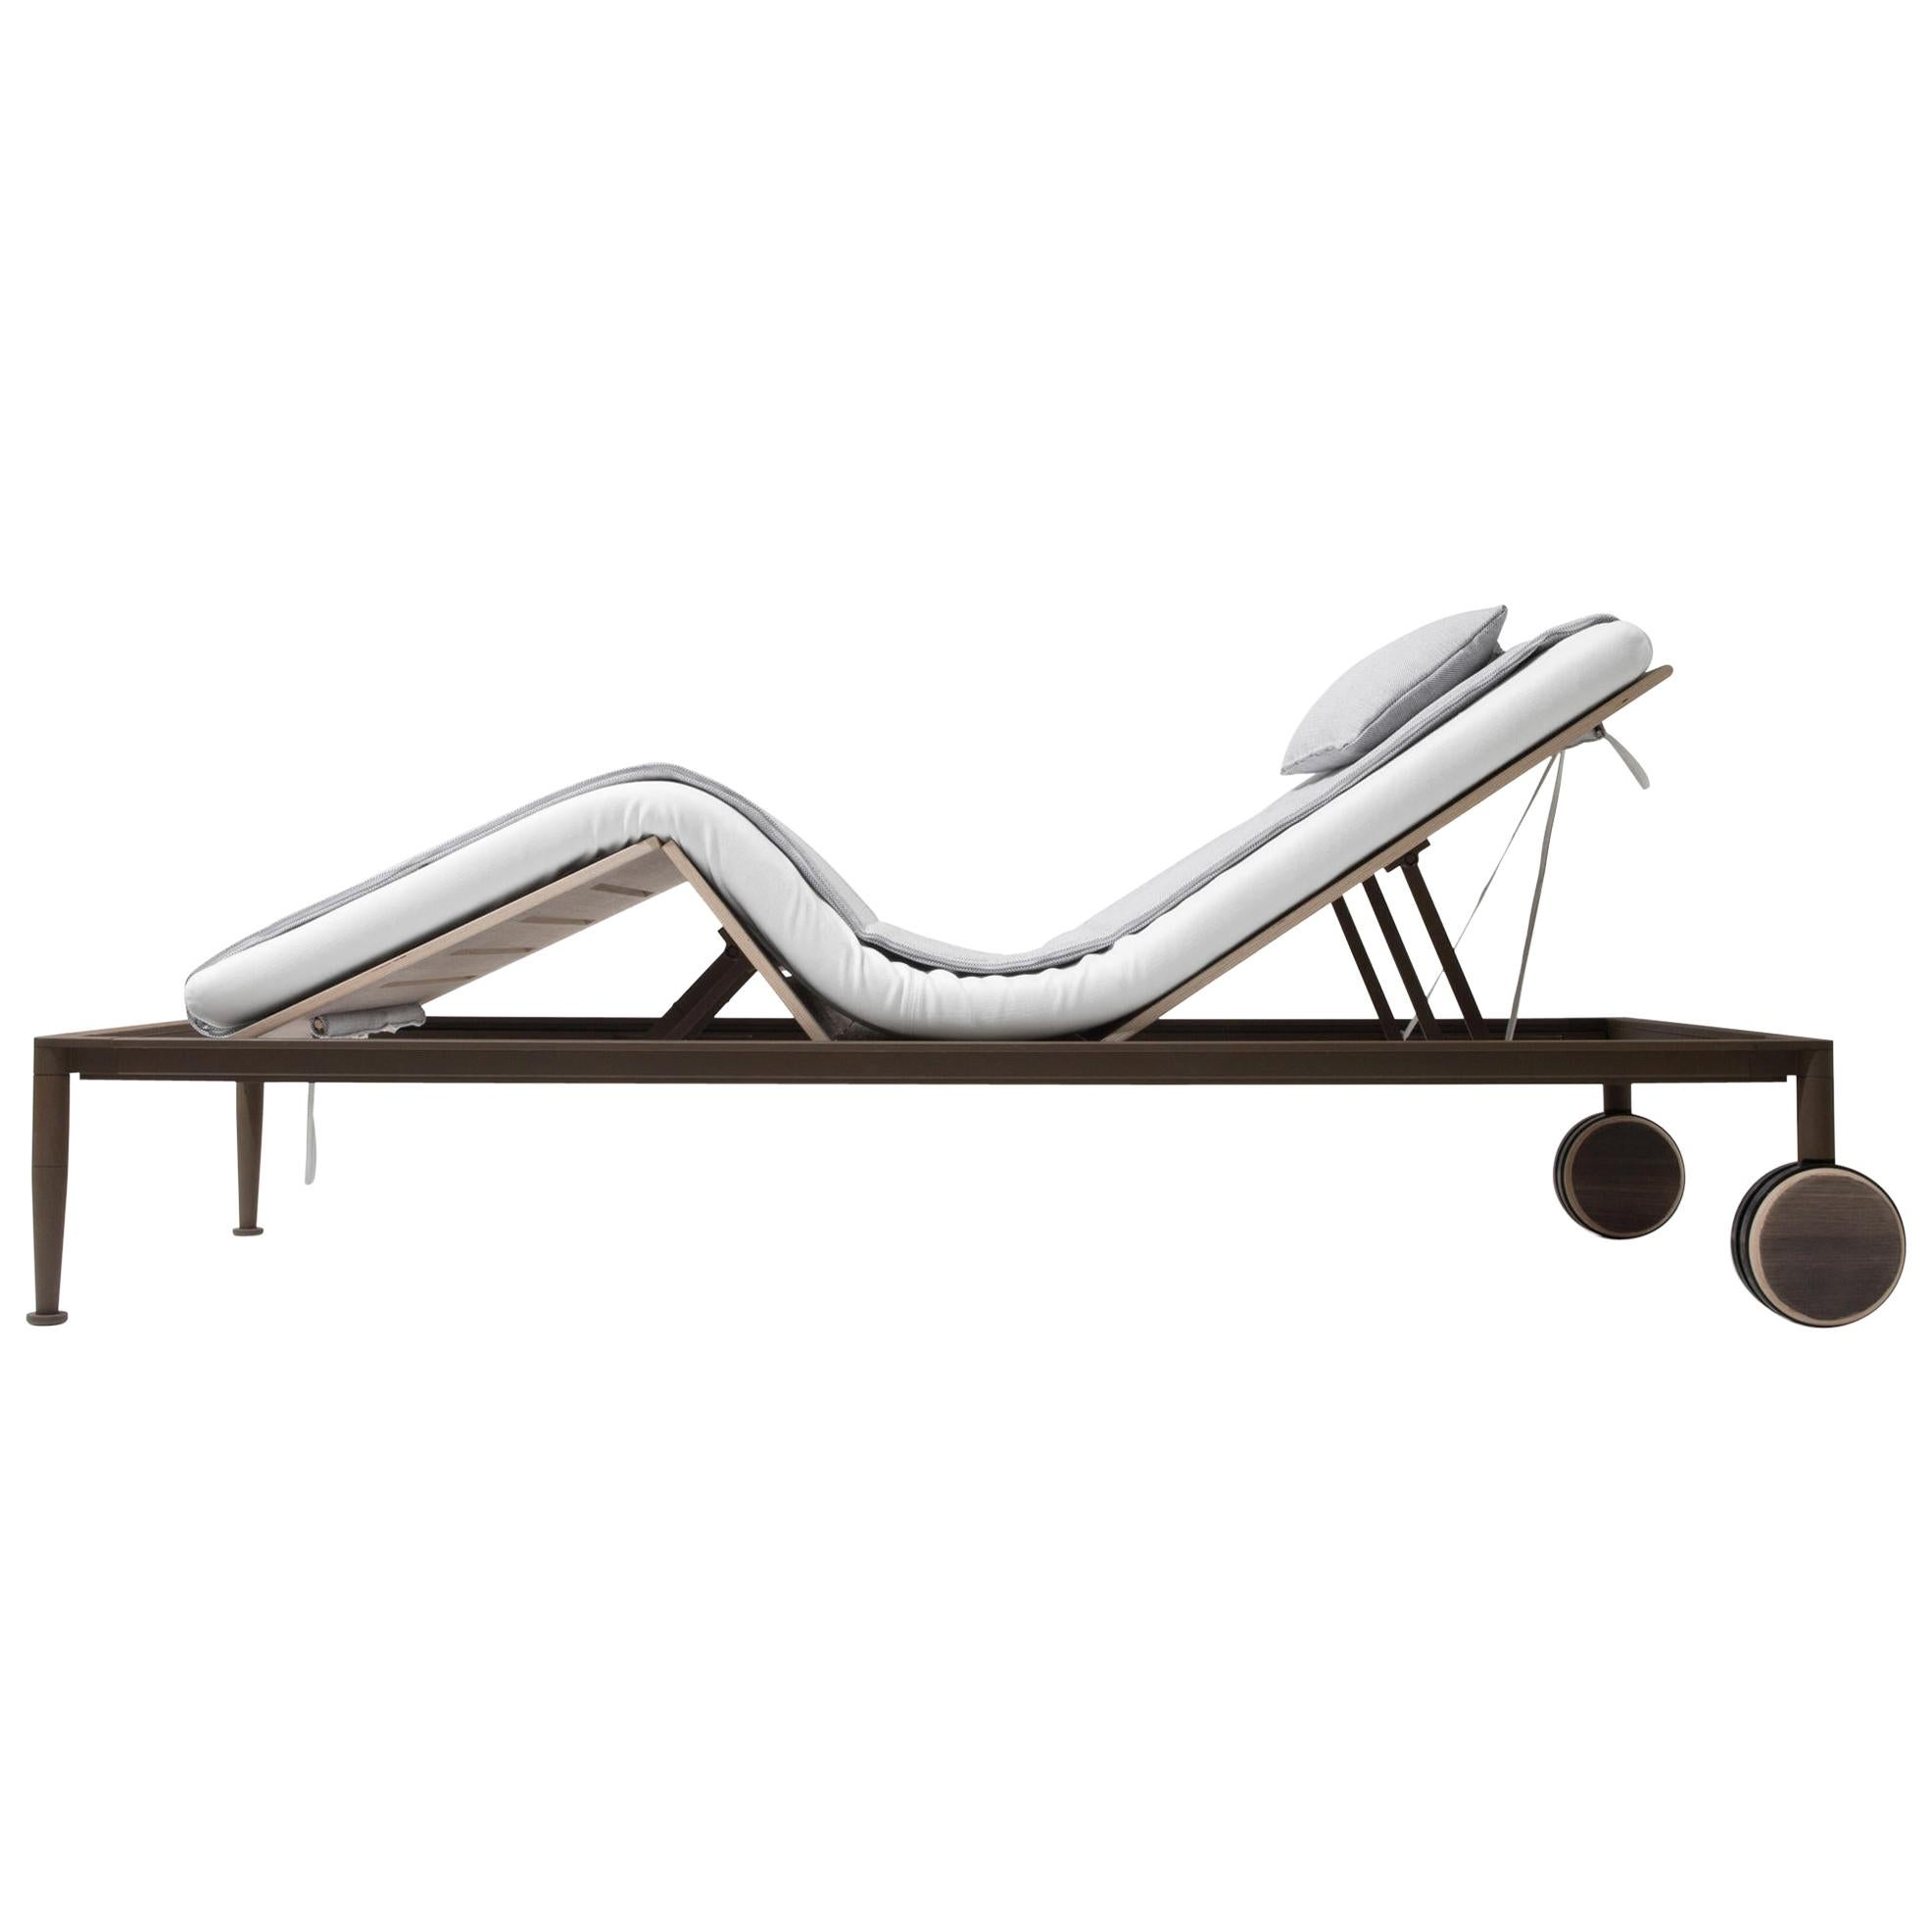 Giorgetti Gea Beach Lounger Designed by Chi Wing Lo - Adjustable Chaise Lounge